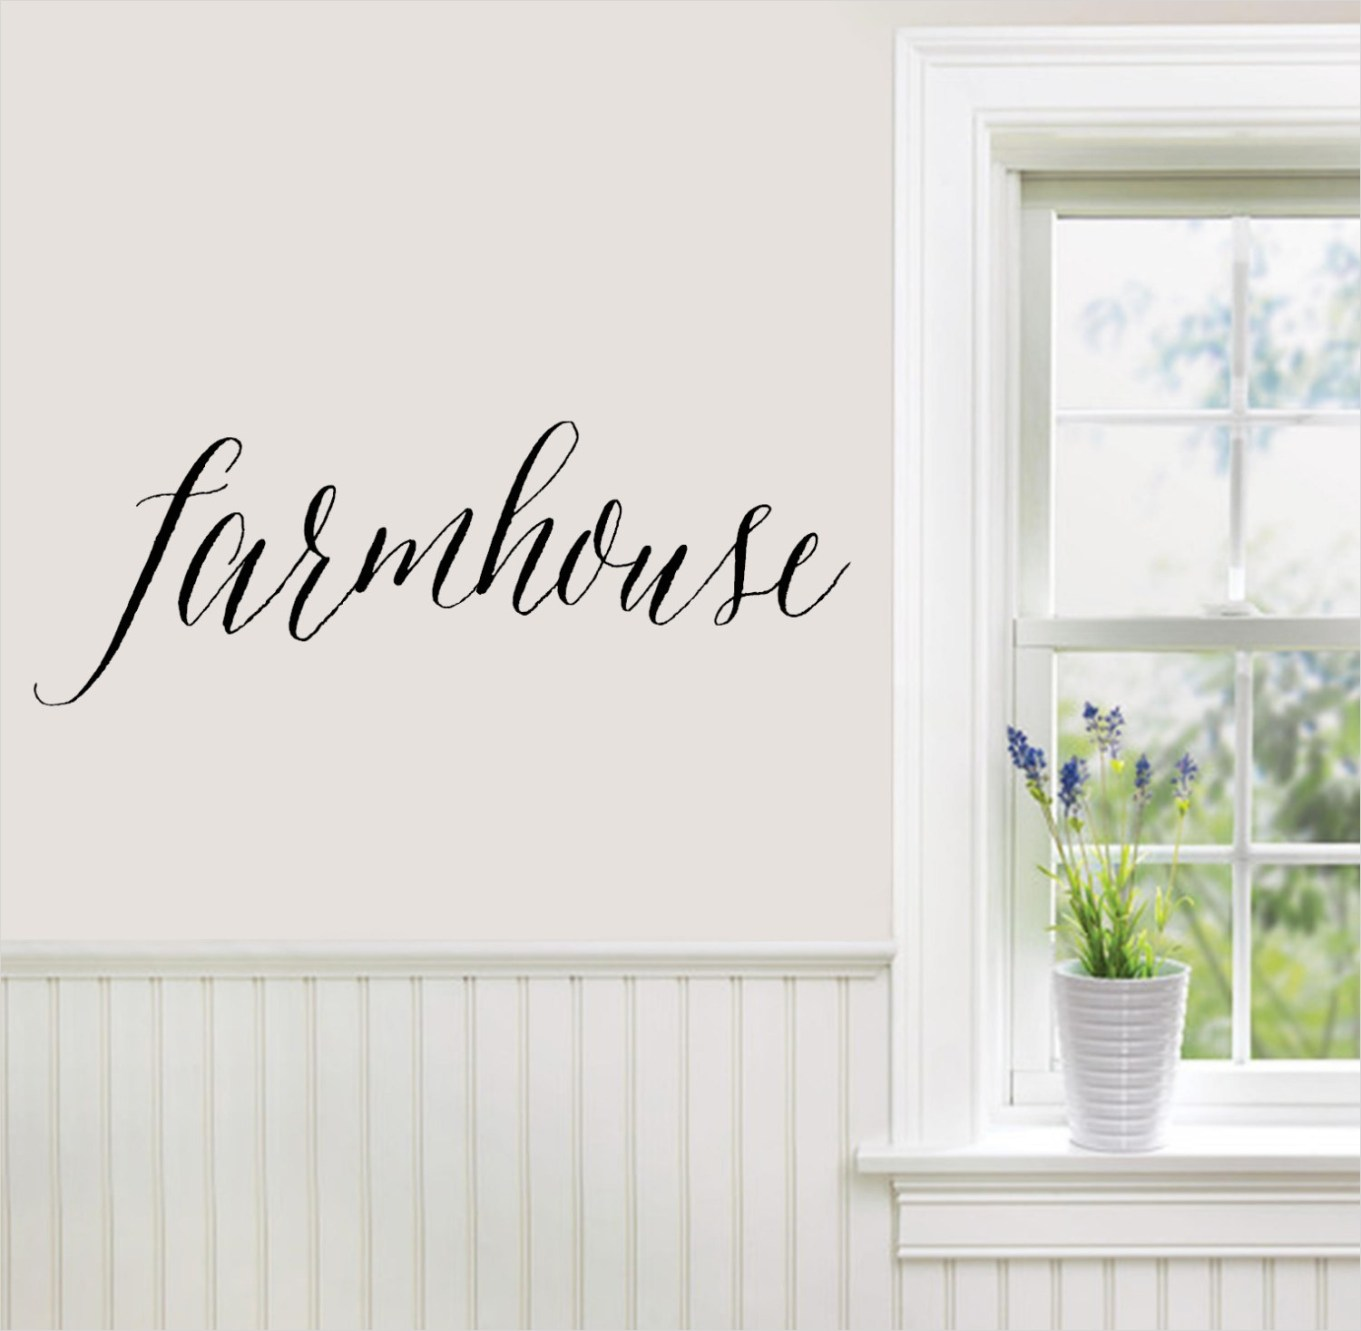 44 Gorgeous Farmhouse Wall Decor 93 Farmhouse Wall Decal Farmhouse Vinyl Decal Kitchen Decor 1